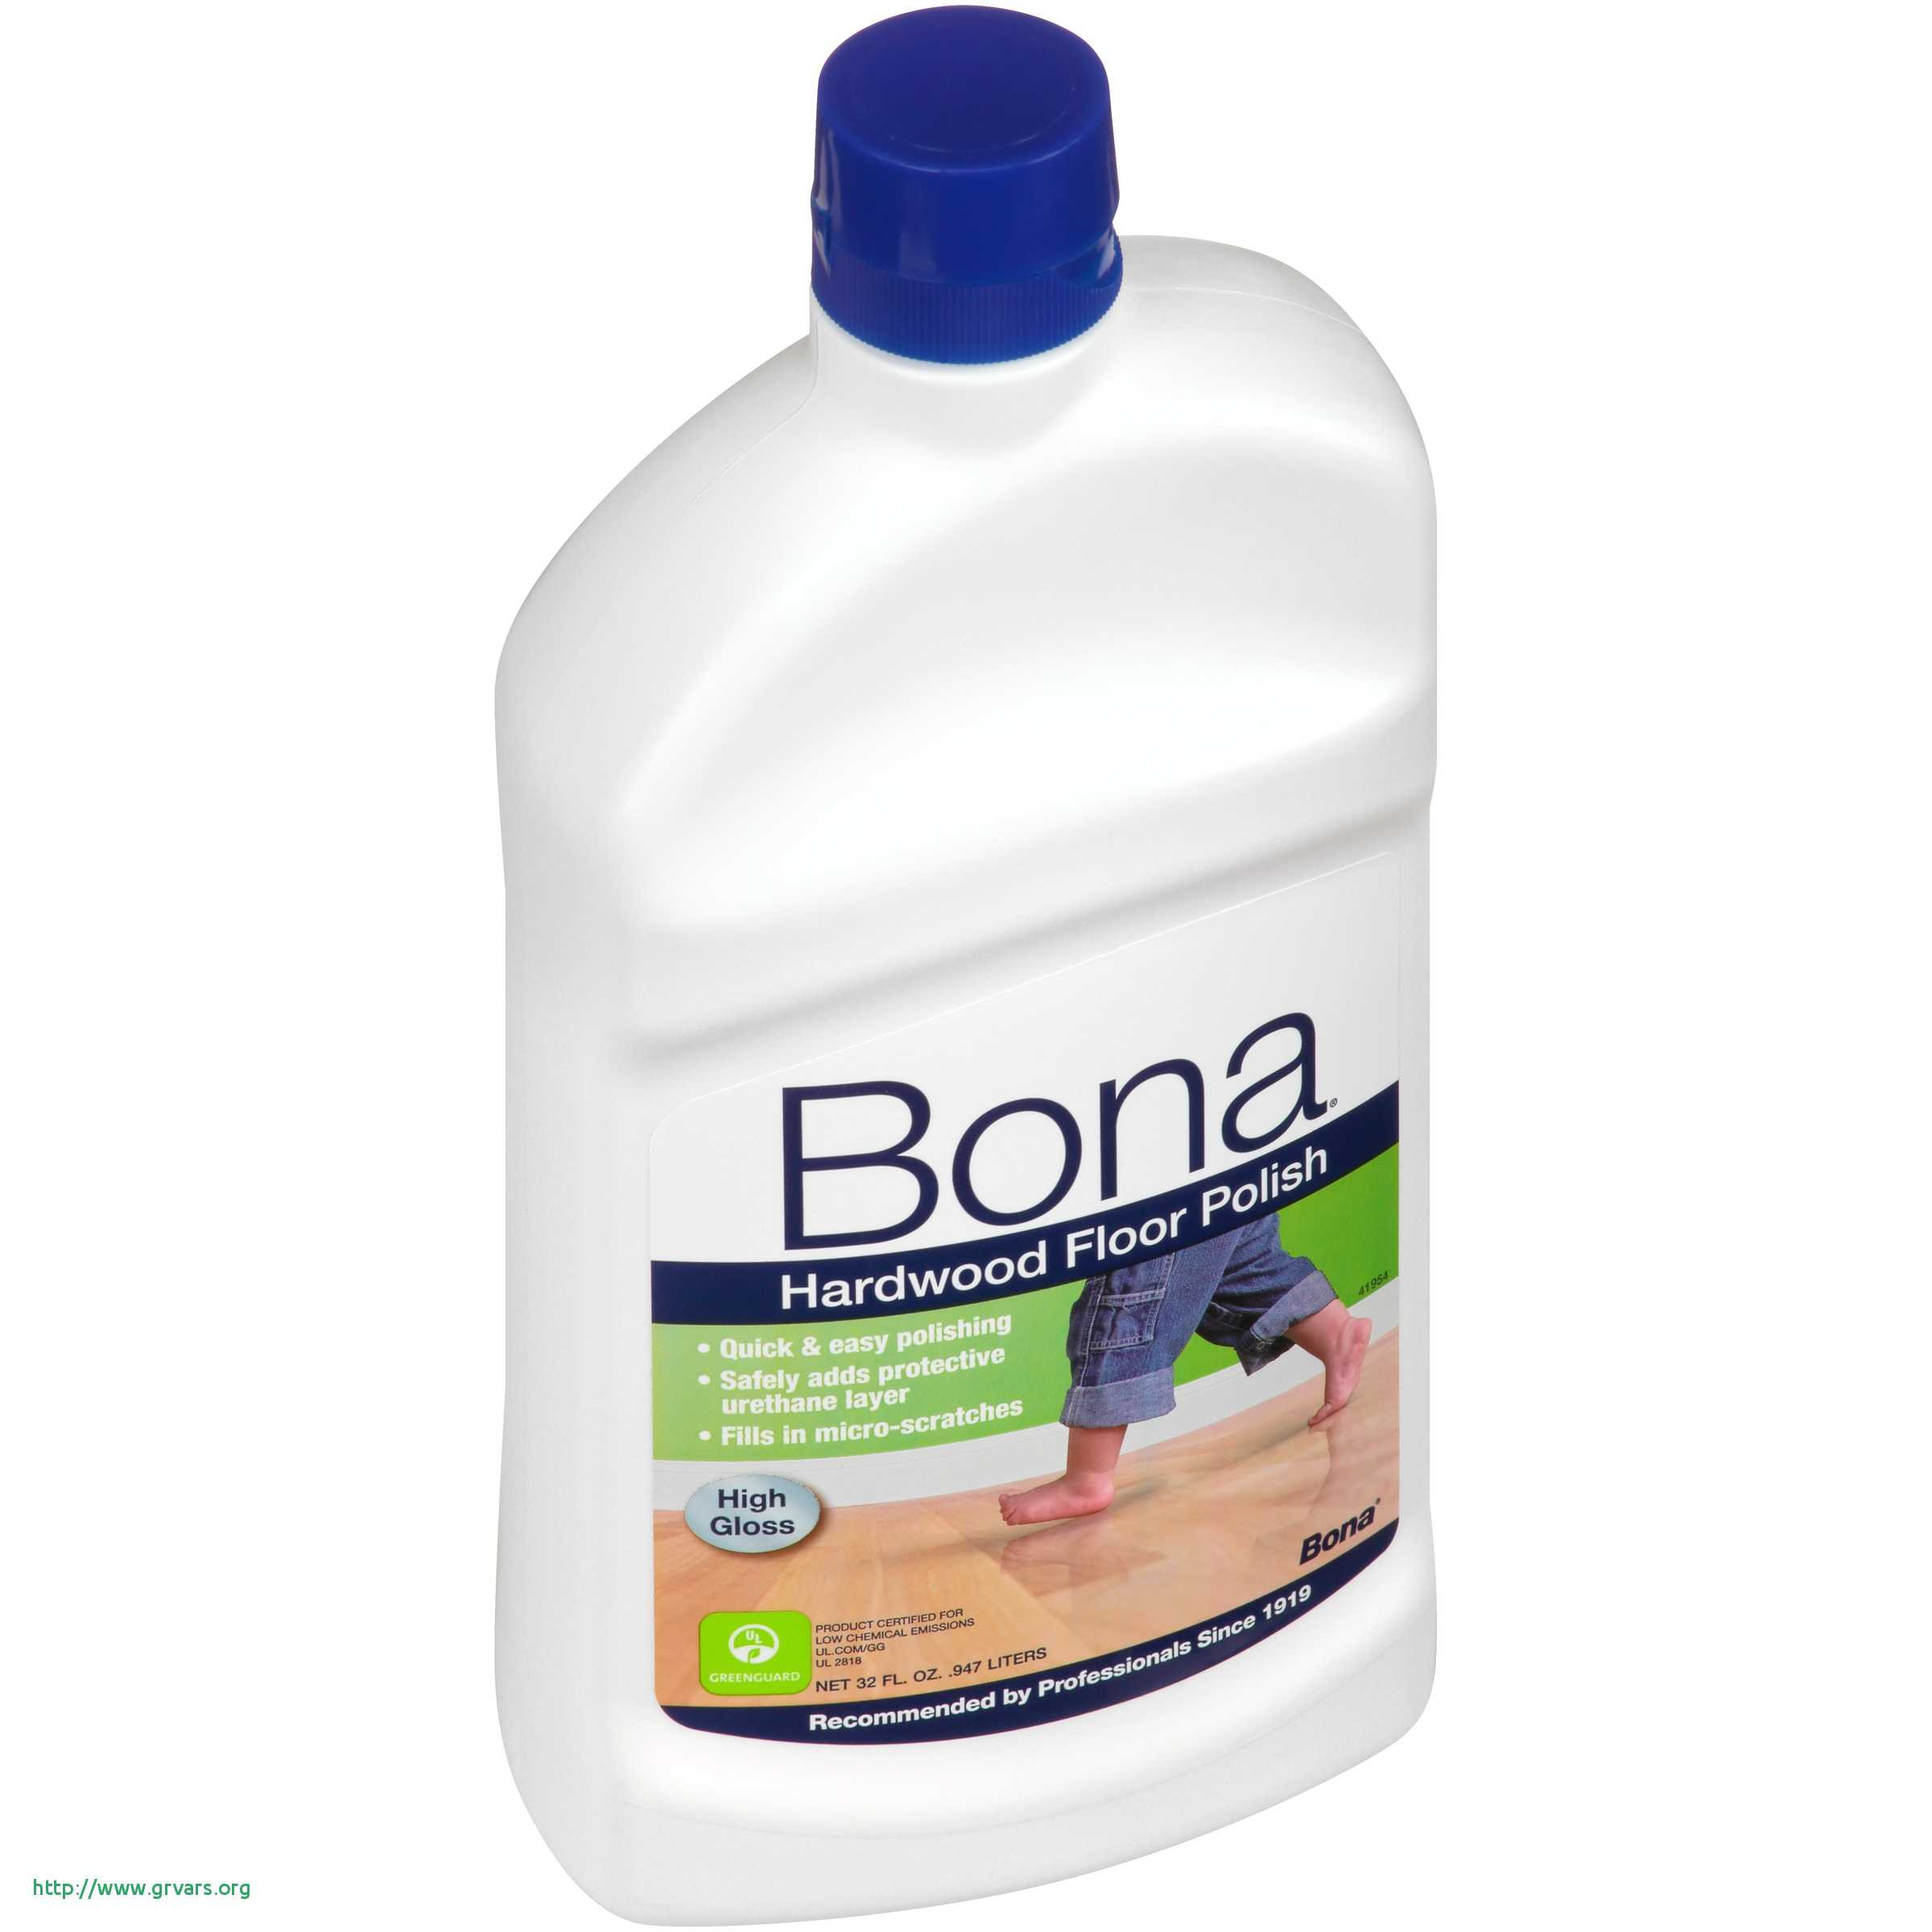 Bruce Hardwood Floor Cleaner Walmart Of Reviews On Bona Floor Cleaner Meilleur De Bona Hardwood Floor Polish within Reviews On Bona Floor Cleaner Meilleur De Bona Hardwood Floor Polish High Gloss Walmart